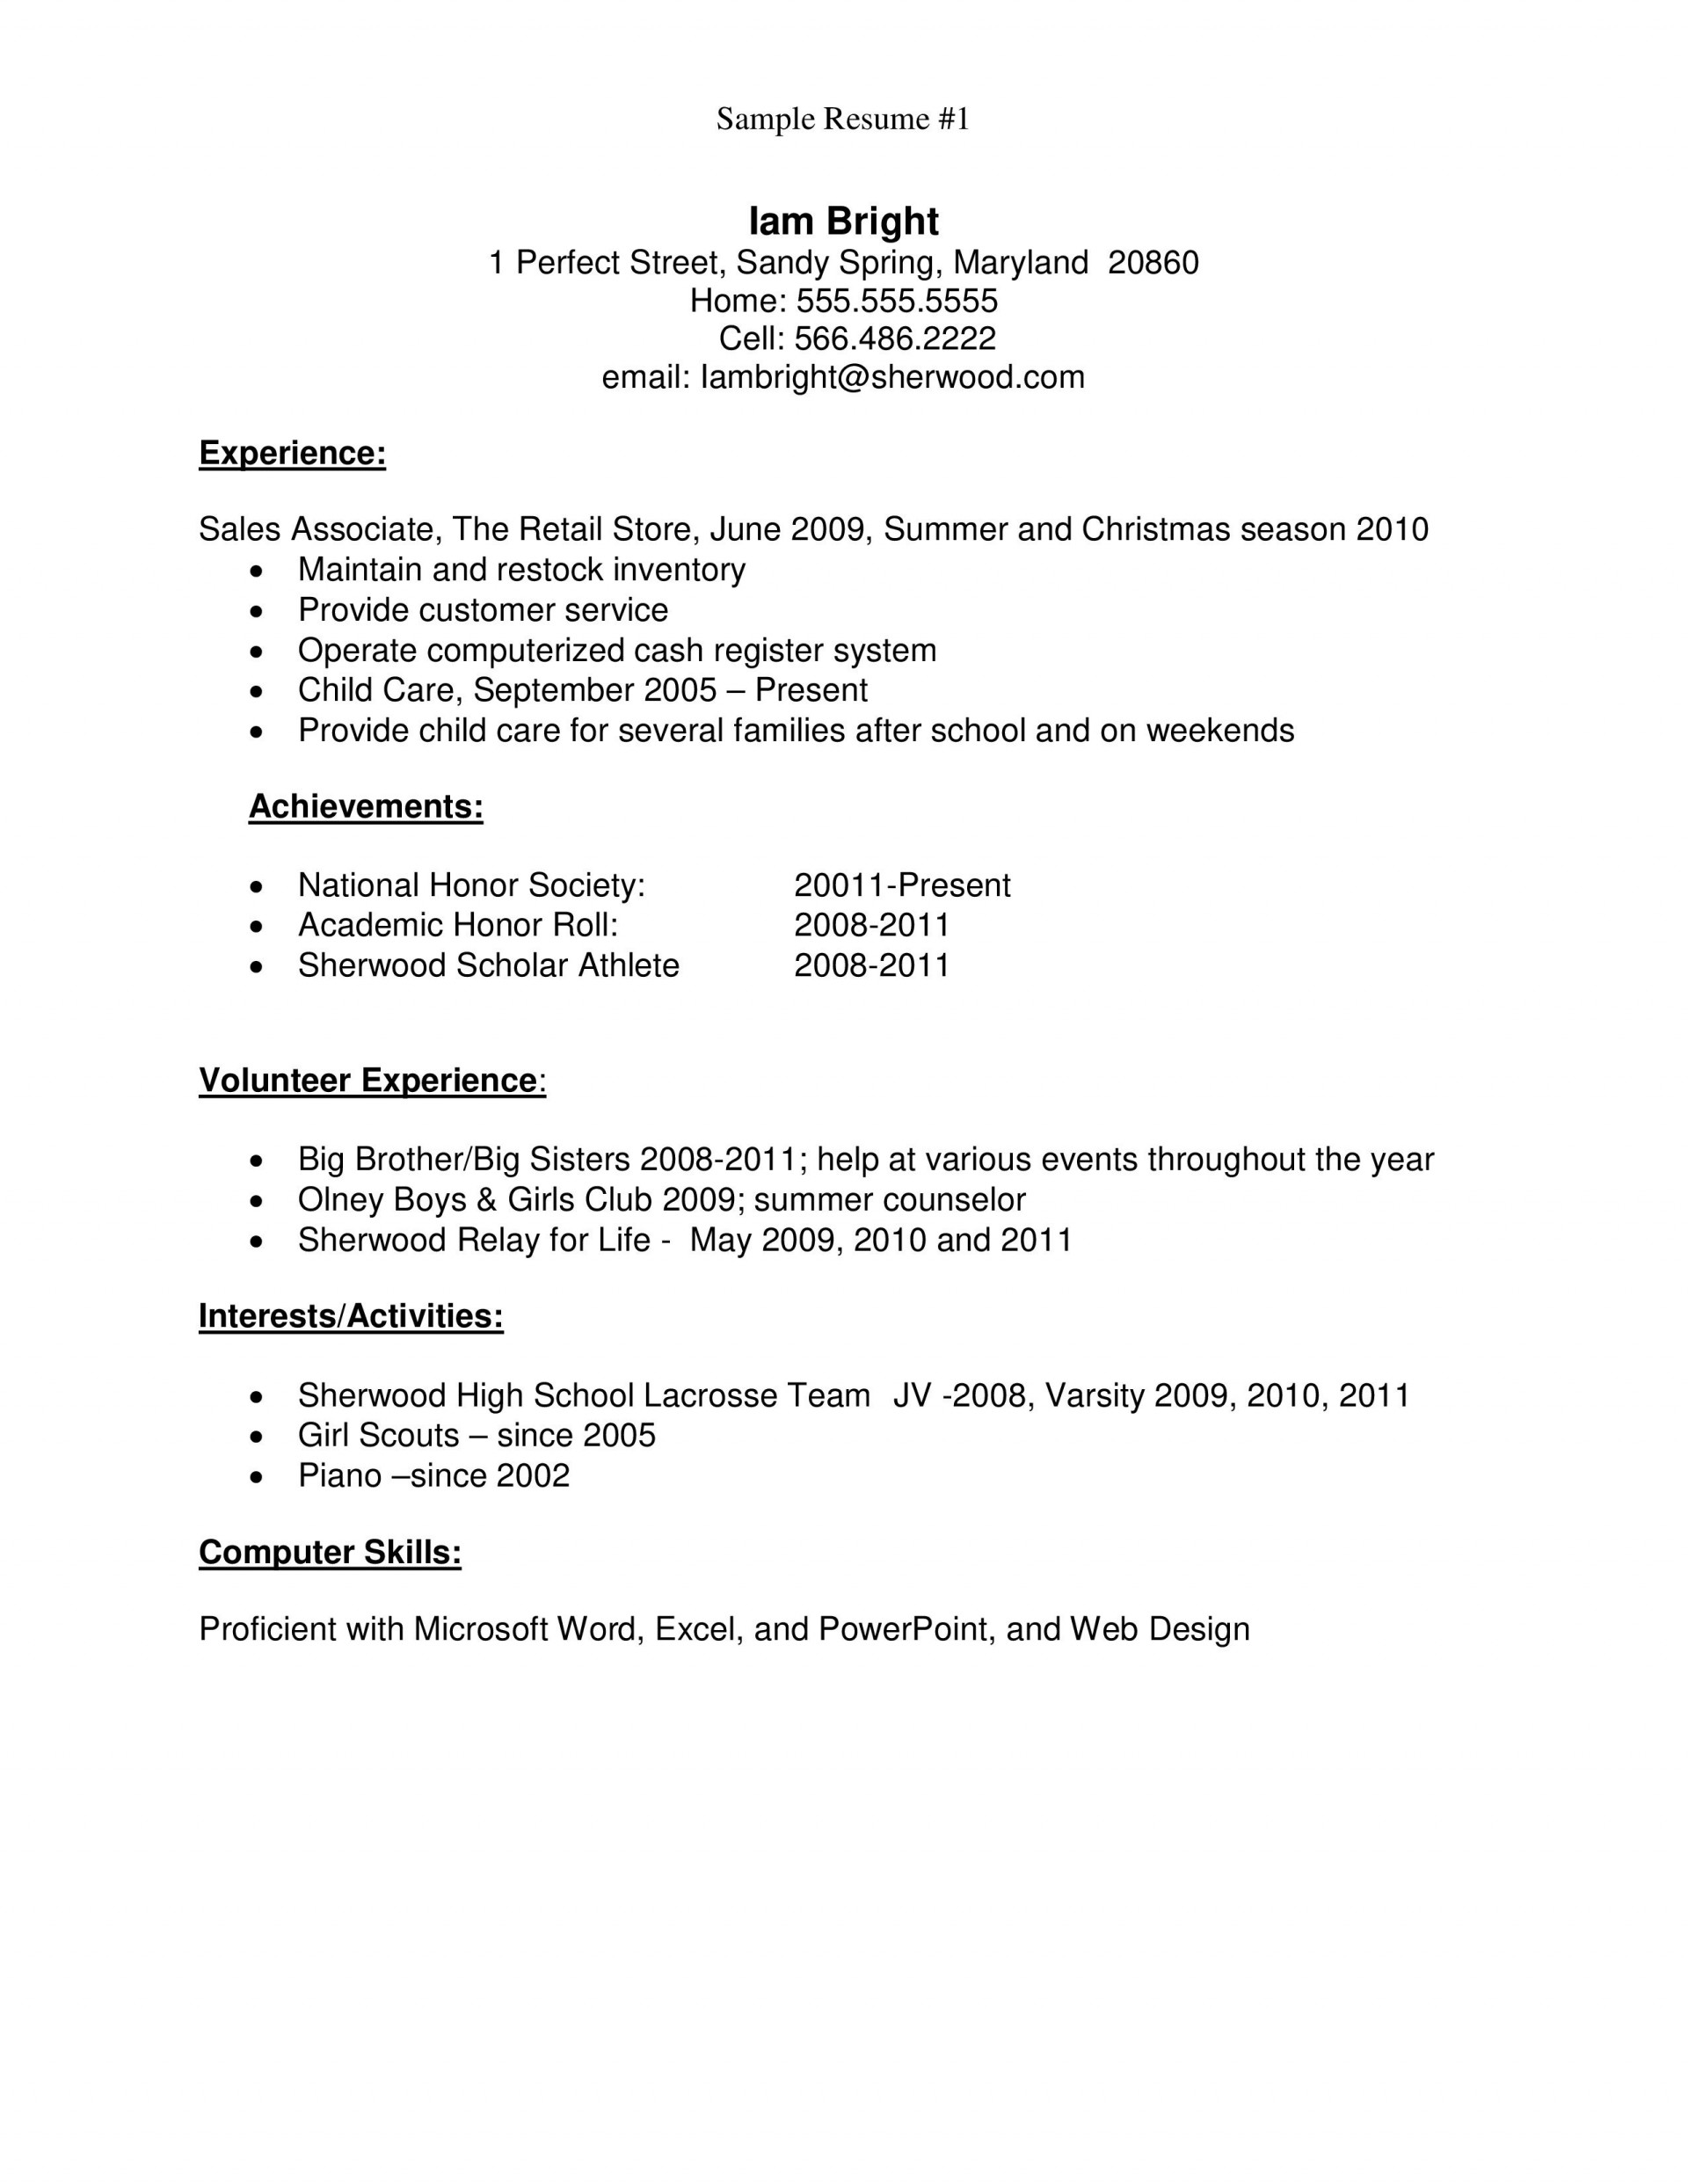 001 Fascinating Resume Template High School Student Image  Students Easy For Curriculum Vitae Format Pdf Free Downloadable1920